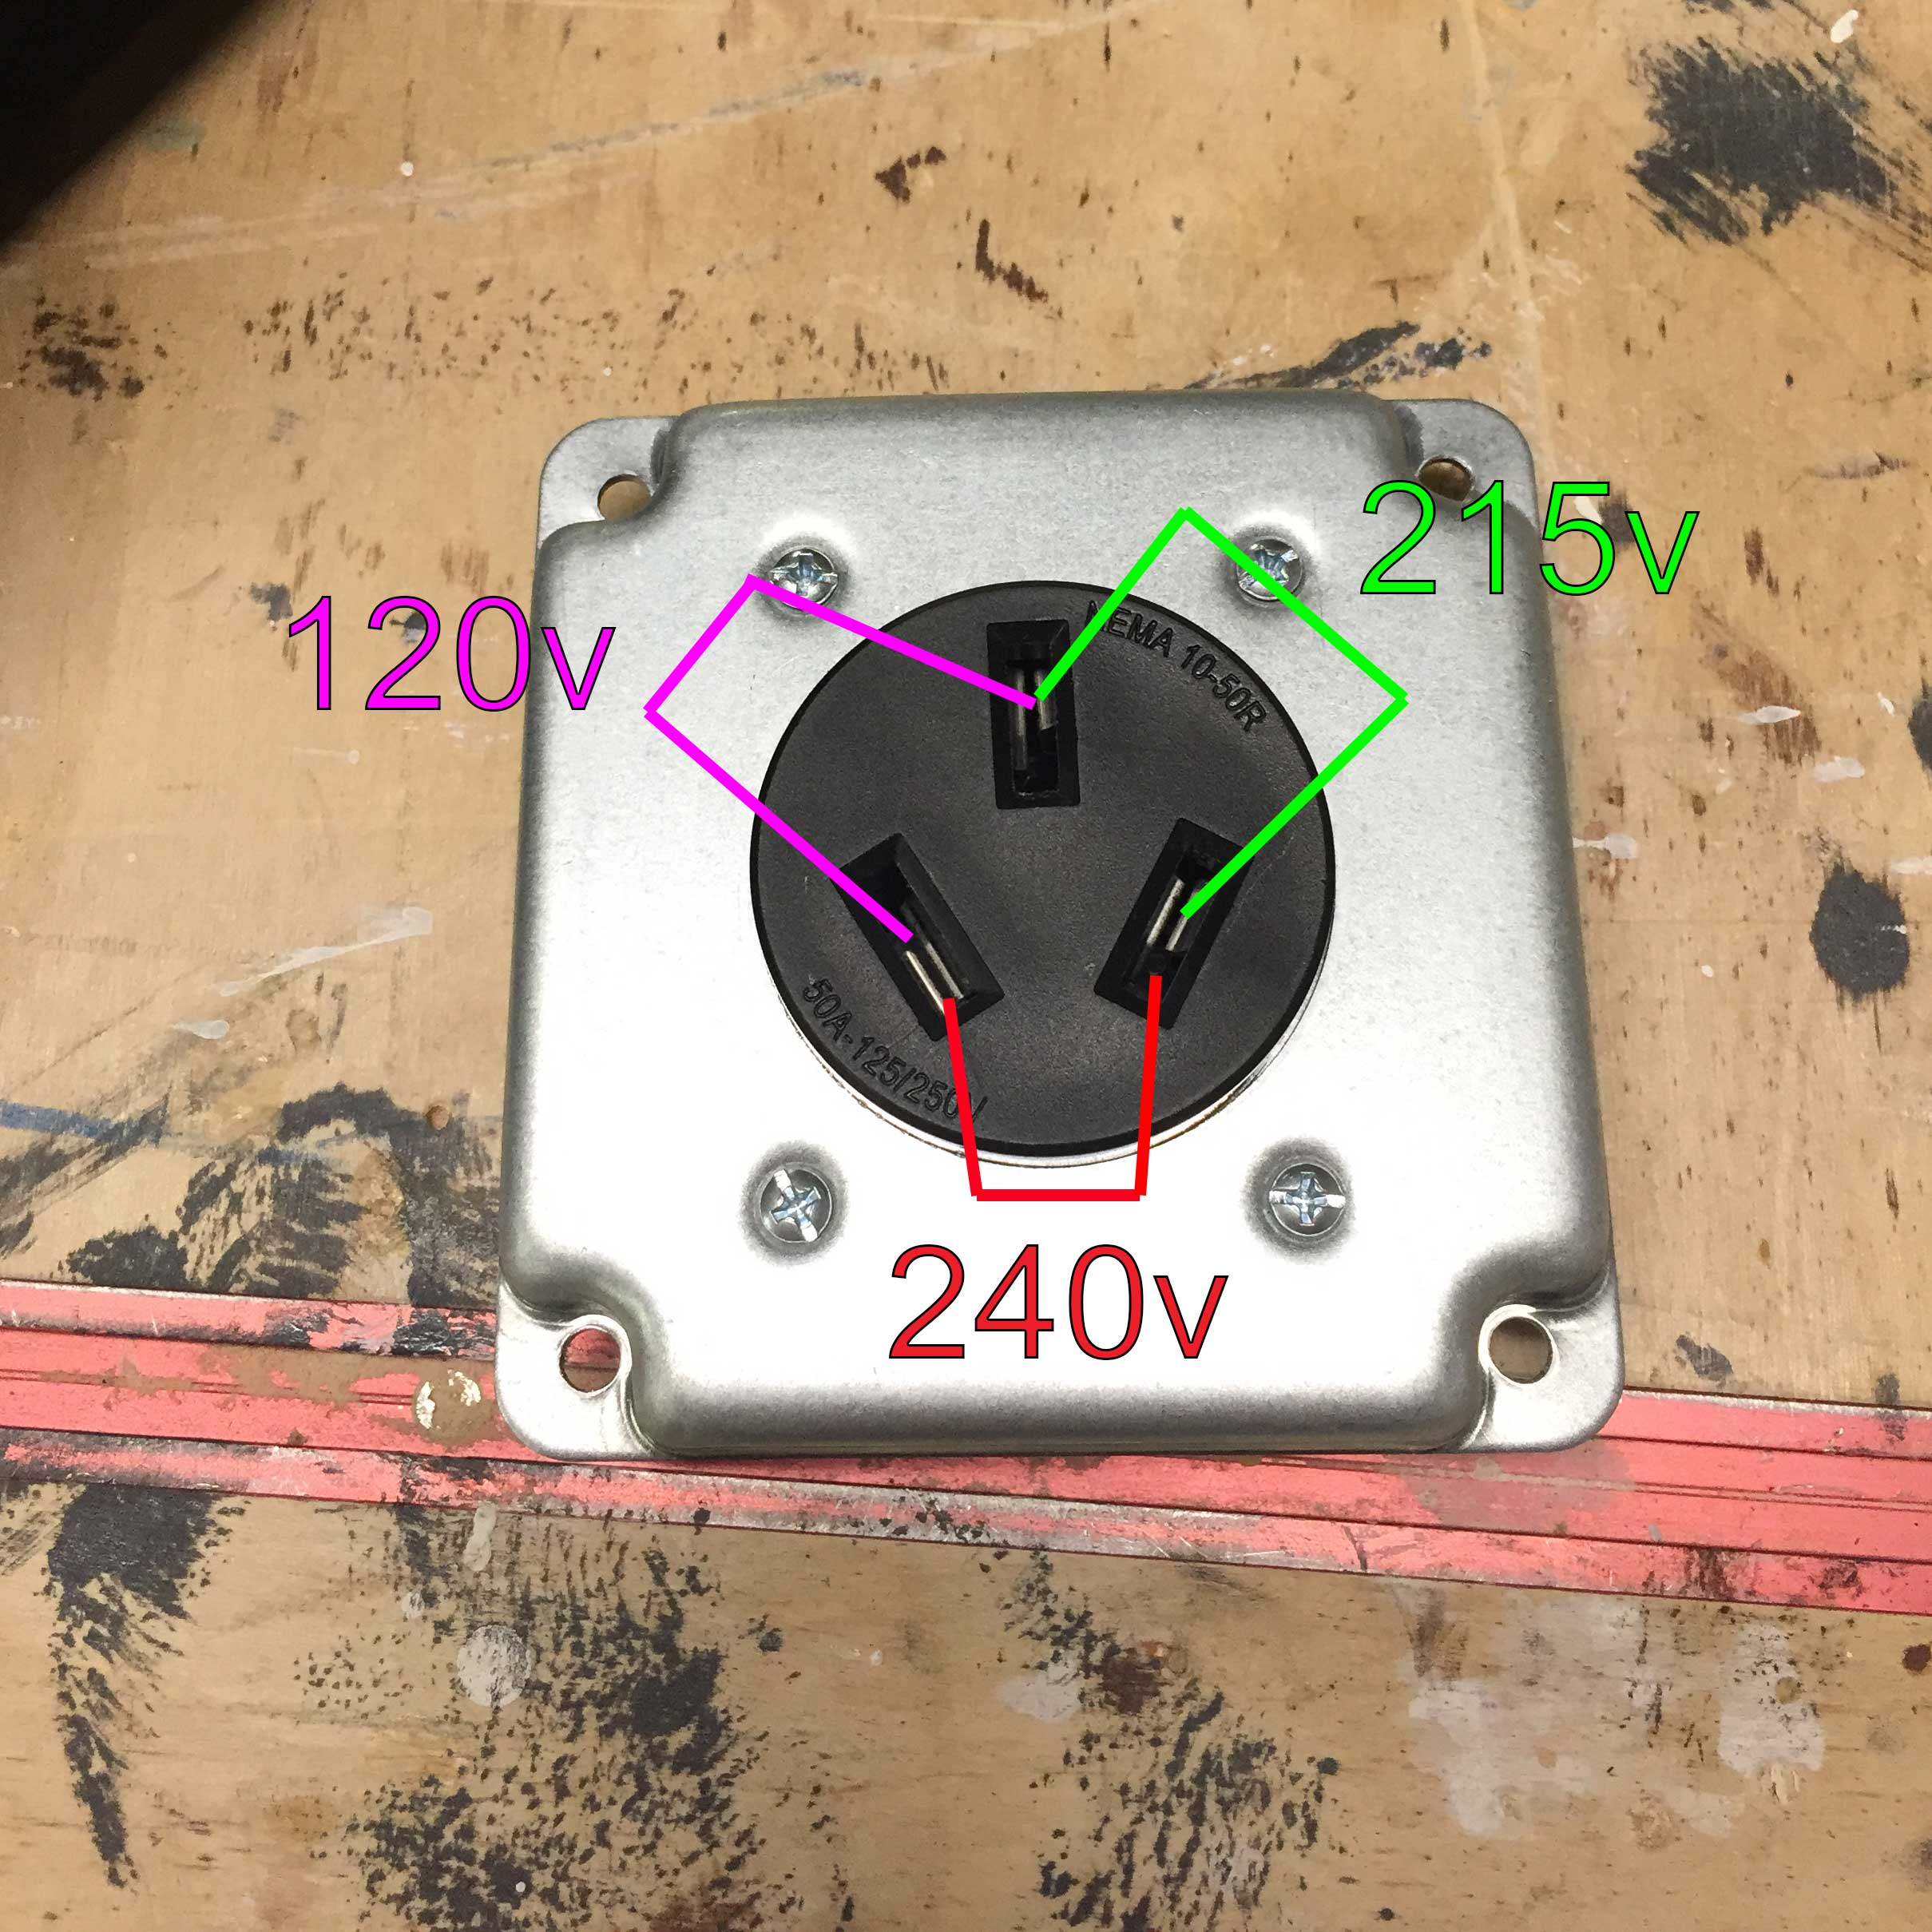 120v receptacle wiring diagram 2000 cadillac deville 240v outlet with and 215v how home